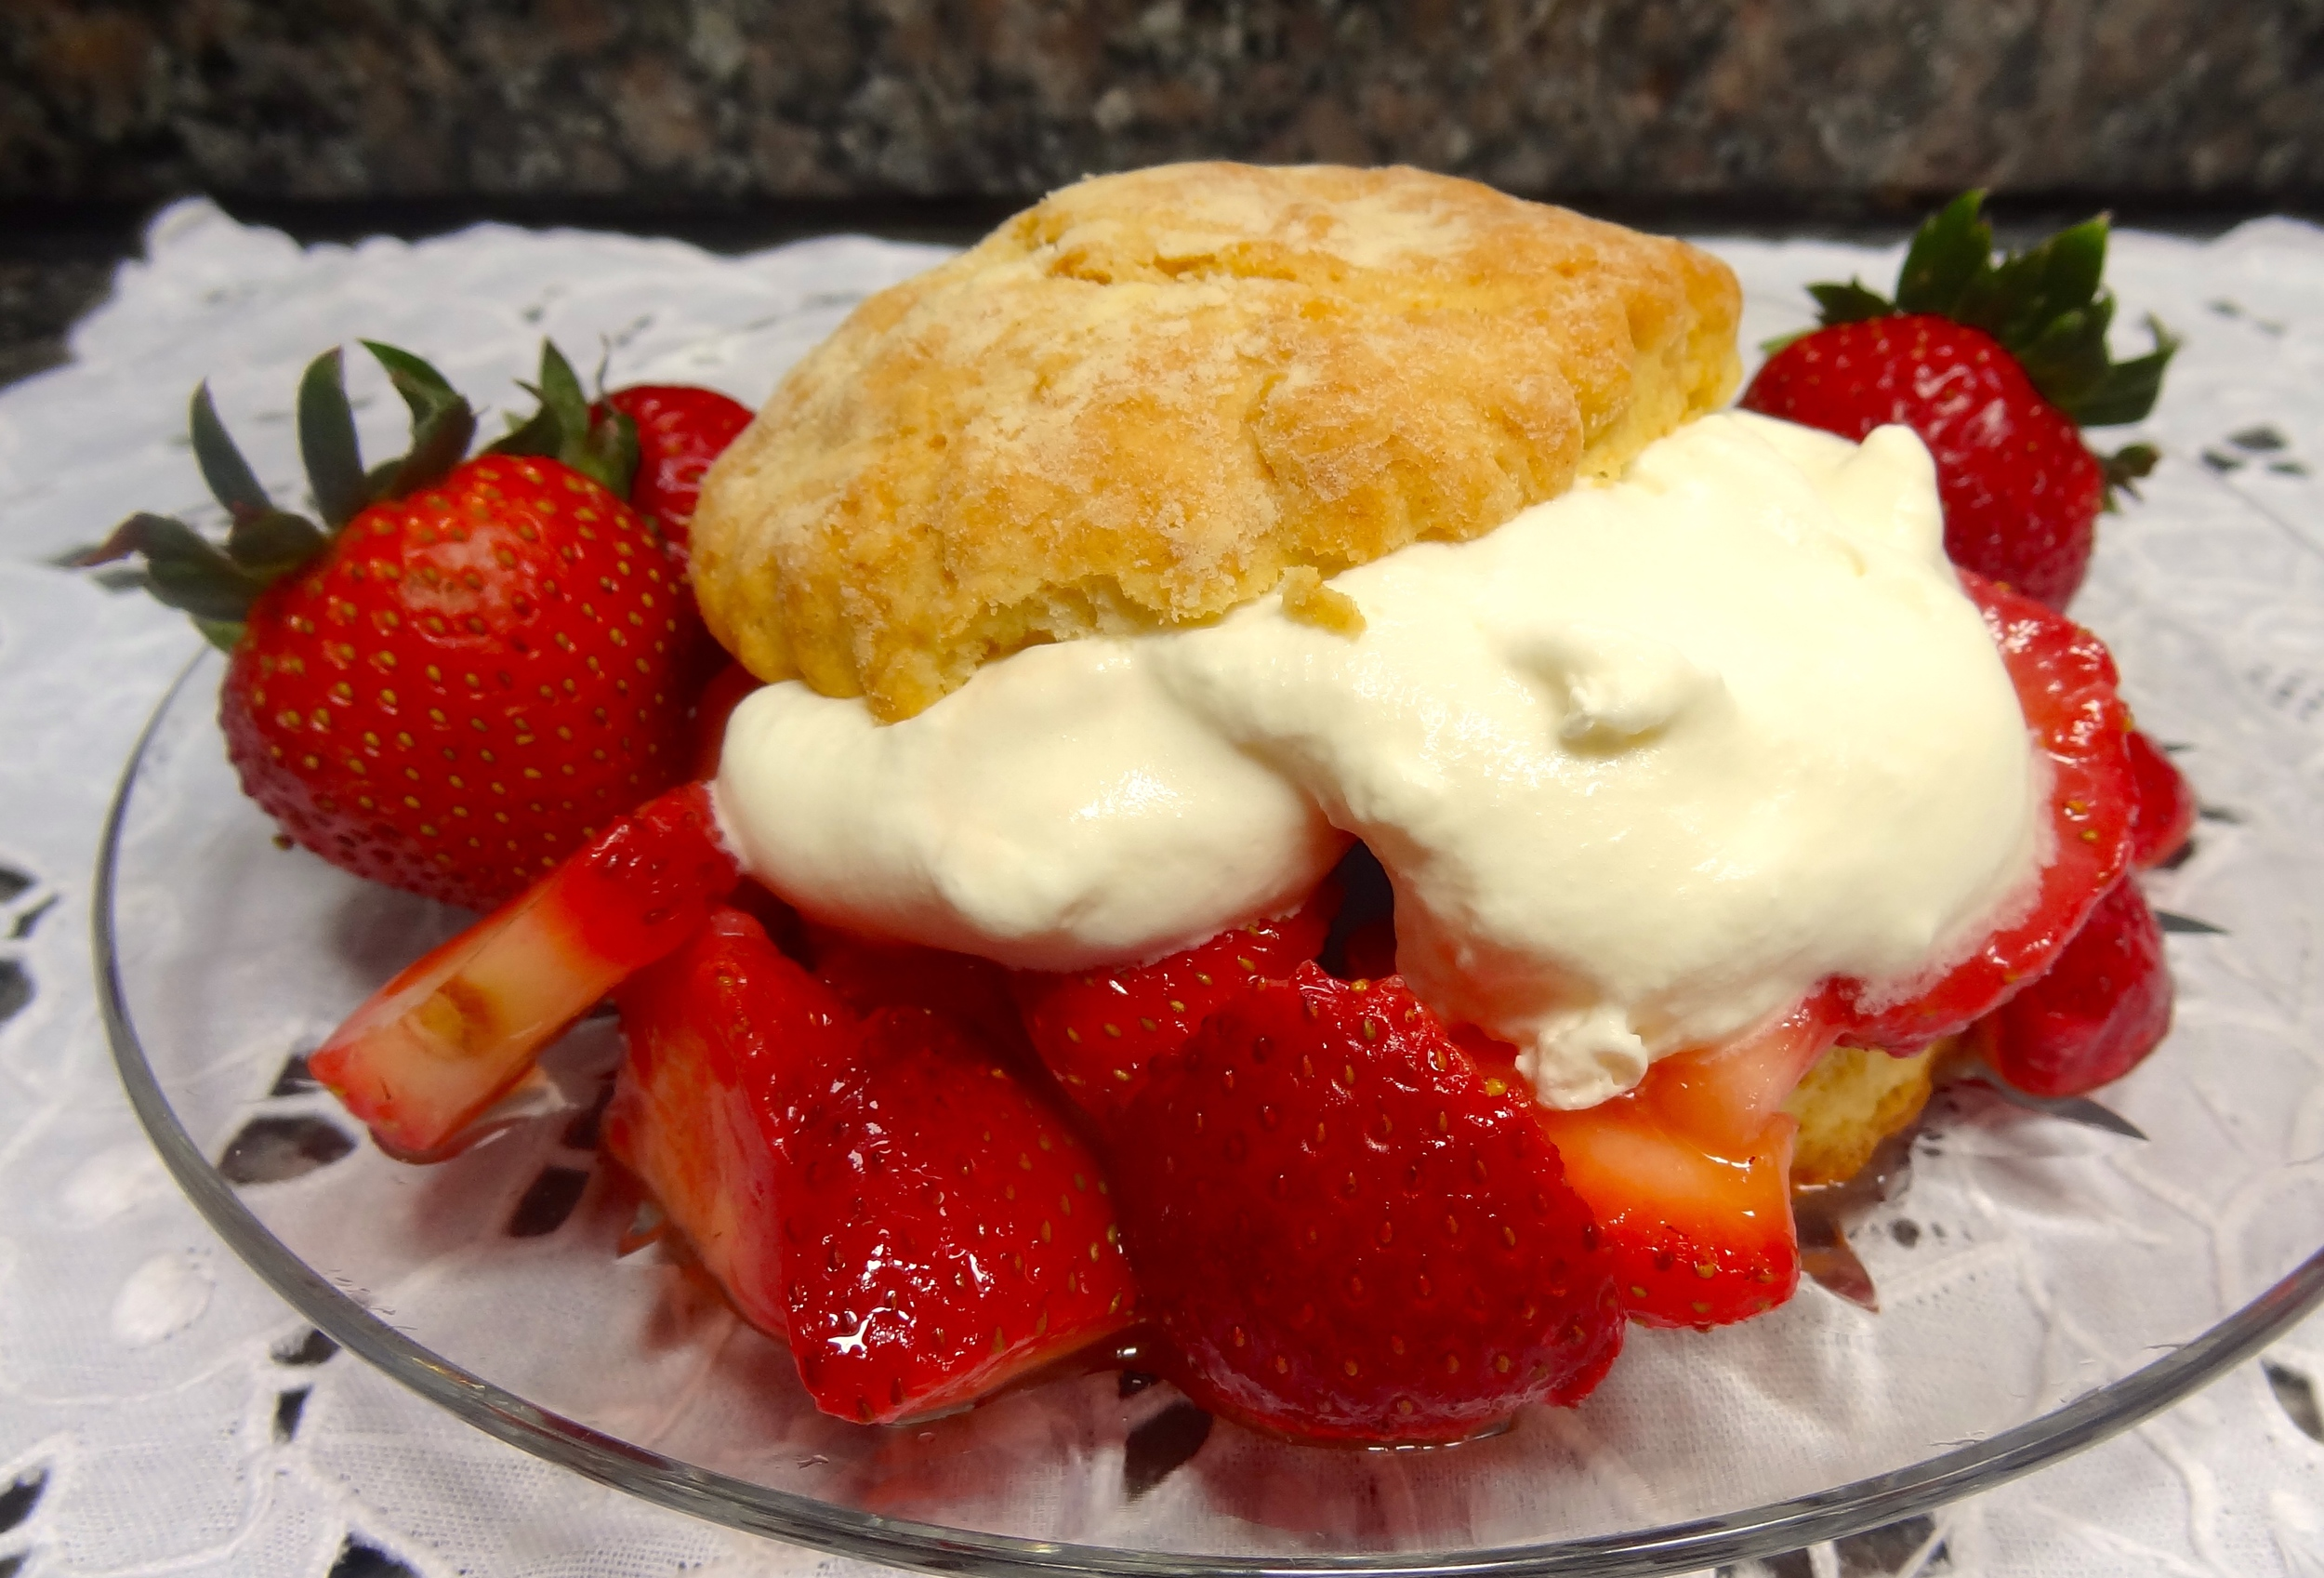 I made the strawberry shortcake for my guests last weekend and even though I bought the berries in a supermarket (no farmer's markets near me open yet), the dessert was a winner and everyone, including the two people on Weight Watchers ate every last crumb.   Adding a little Grand Marnier is a good tip if the berries aren't the absolute best.   I also made the biscuits a little fatter than usual – 7 circles cut out of the dough instead of the usual 8. They were moist and fluffy and took in all the lush strawberry juices and thick, almost-whipped cream. I used 6 of the biscuits for company. I ate the extra one for lunch a few hours before my friends came. My mother always told me not to experiment with recipes for company, so I thought it would be a good idea to make sure the thicker biscuit would be okay.